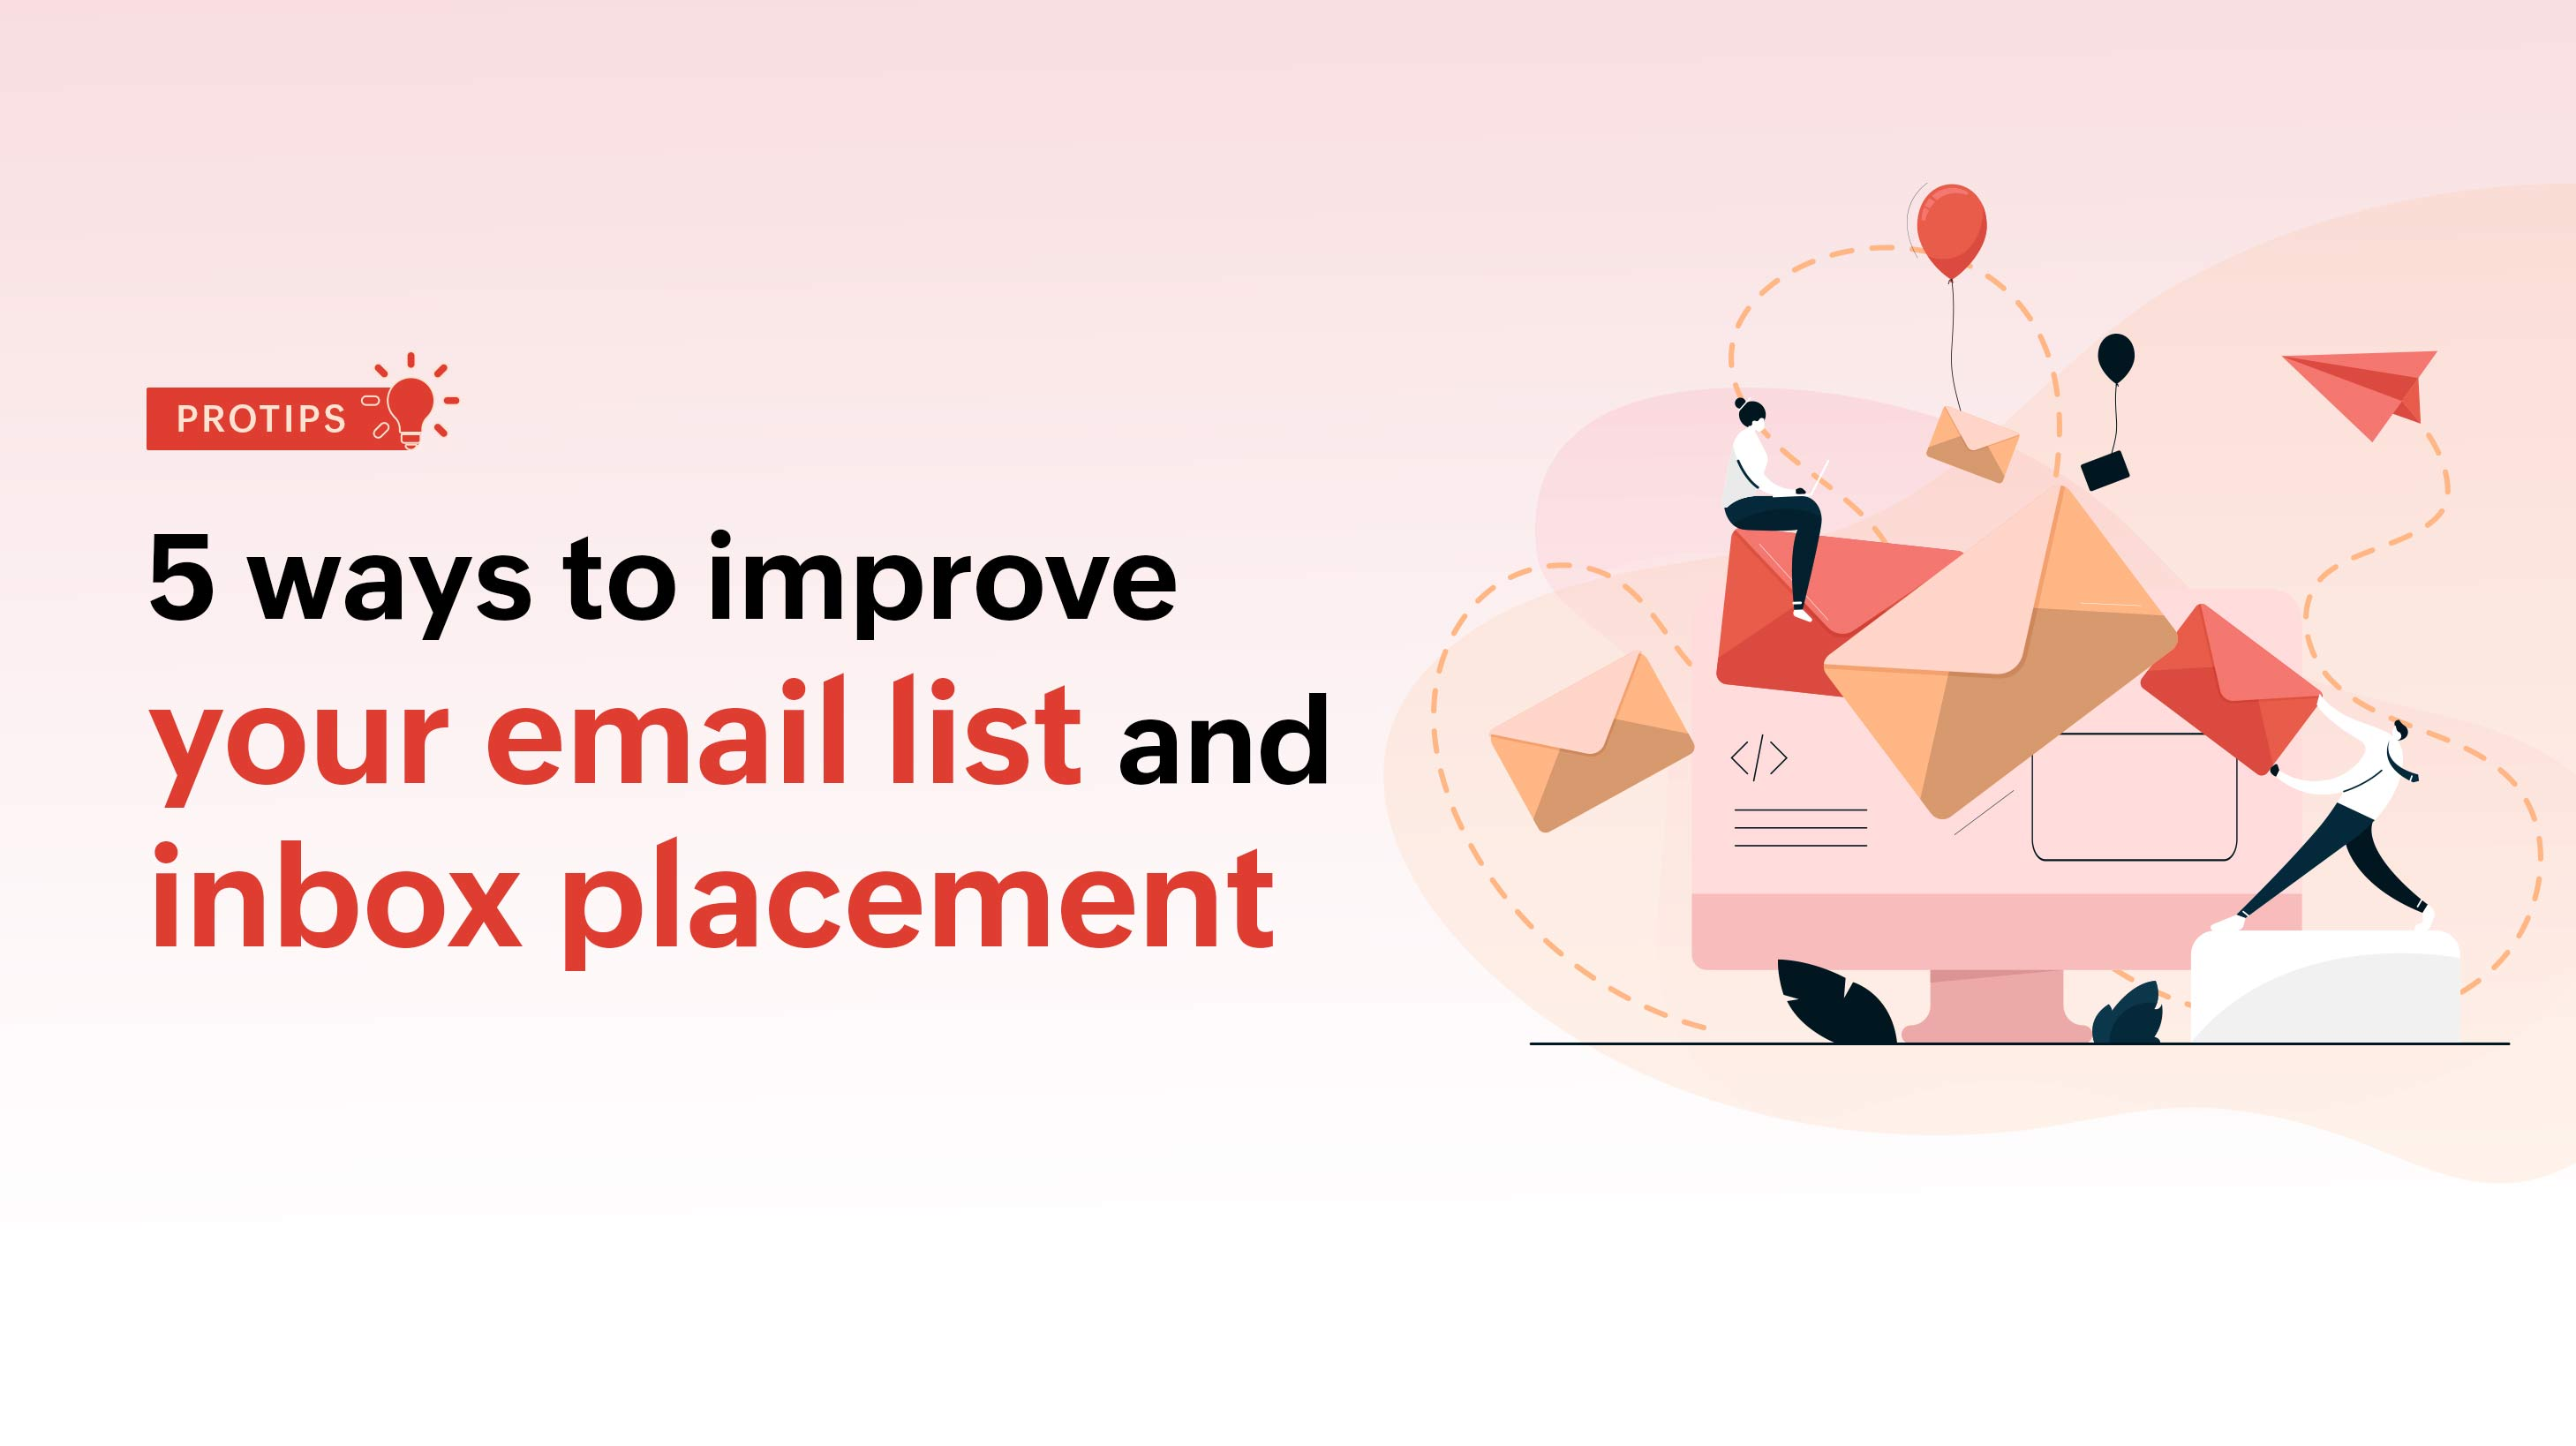 5 ways to improve your email list and inbox placement